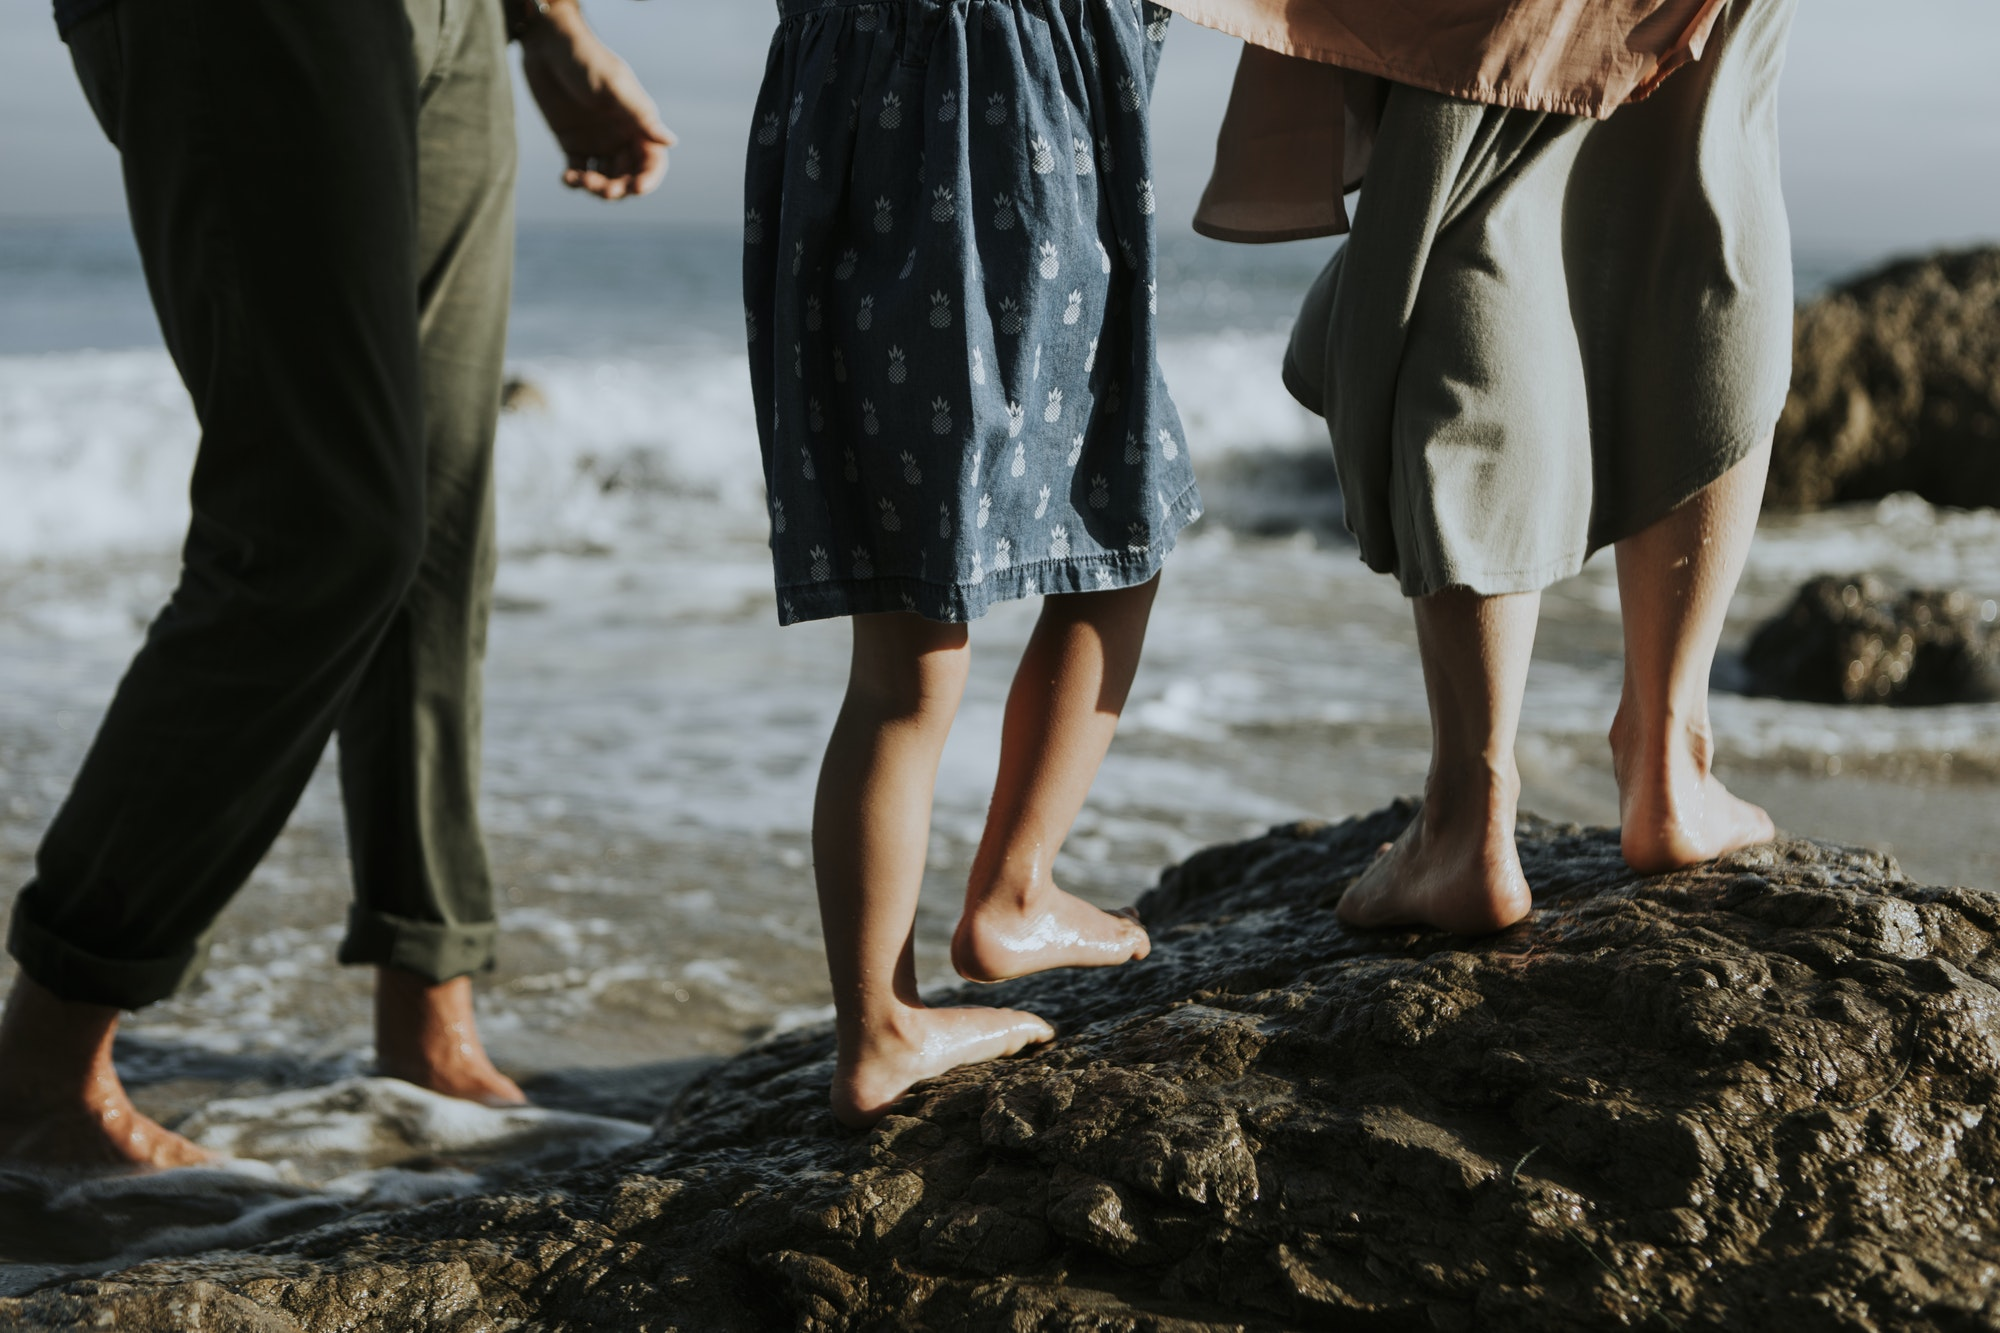 A shot of people's feet walking on rocks at the beach